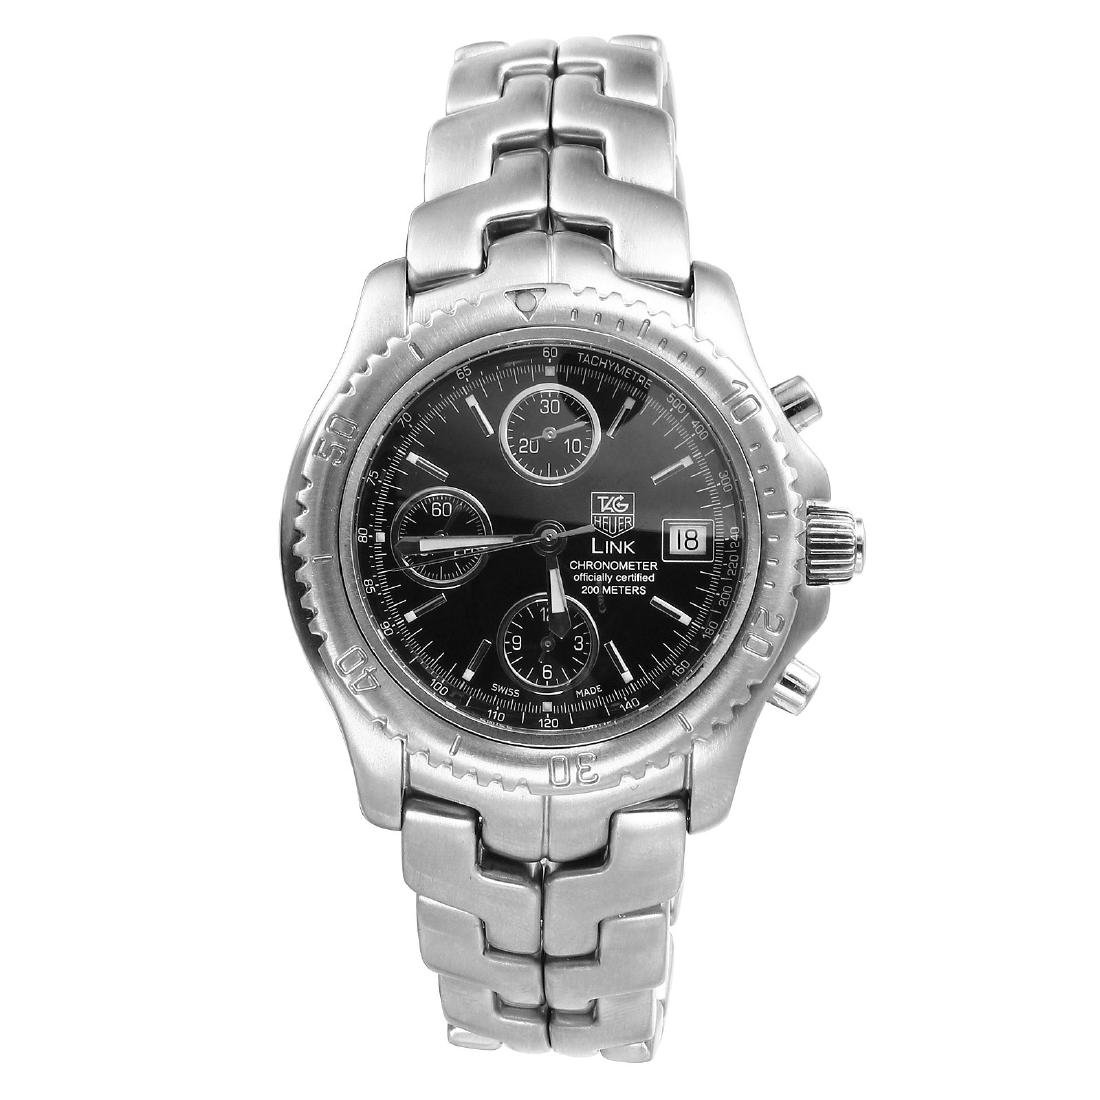 Tag Heuer Chronometer Automatic Watch